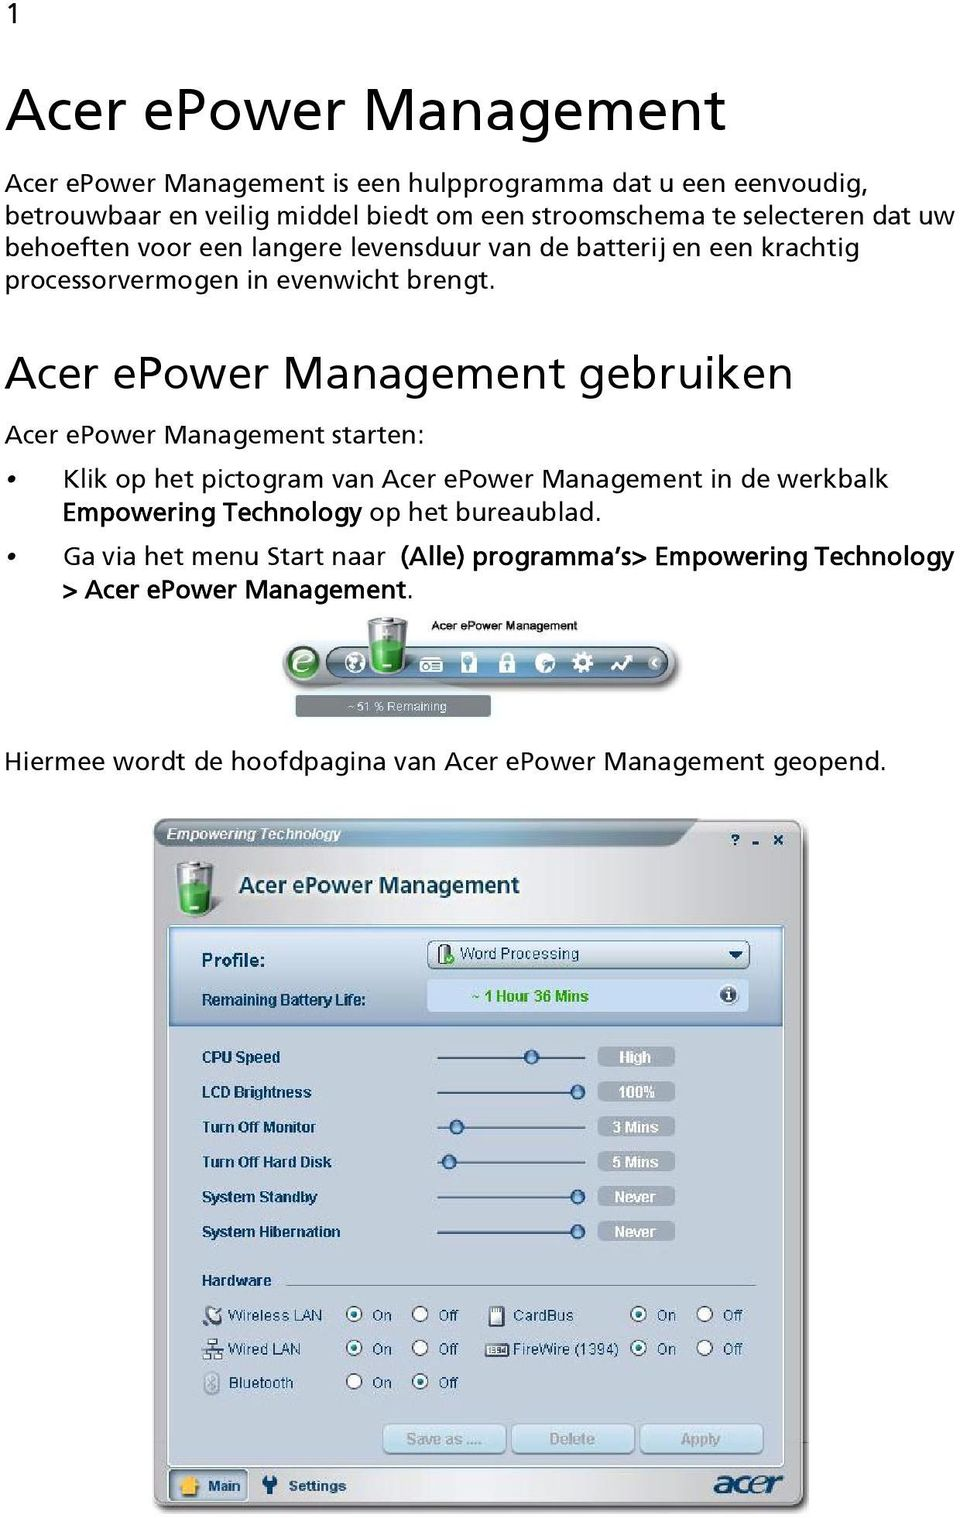 Acer epower Management gebruiken Acer epower Management starten: Klik op het pictogram van Acer epower Management in de werkbalk Empowering Technology